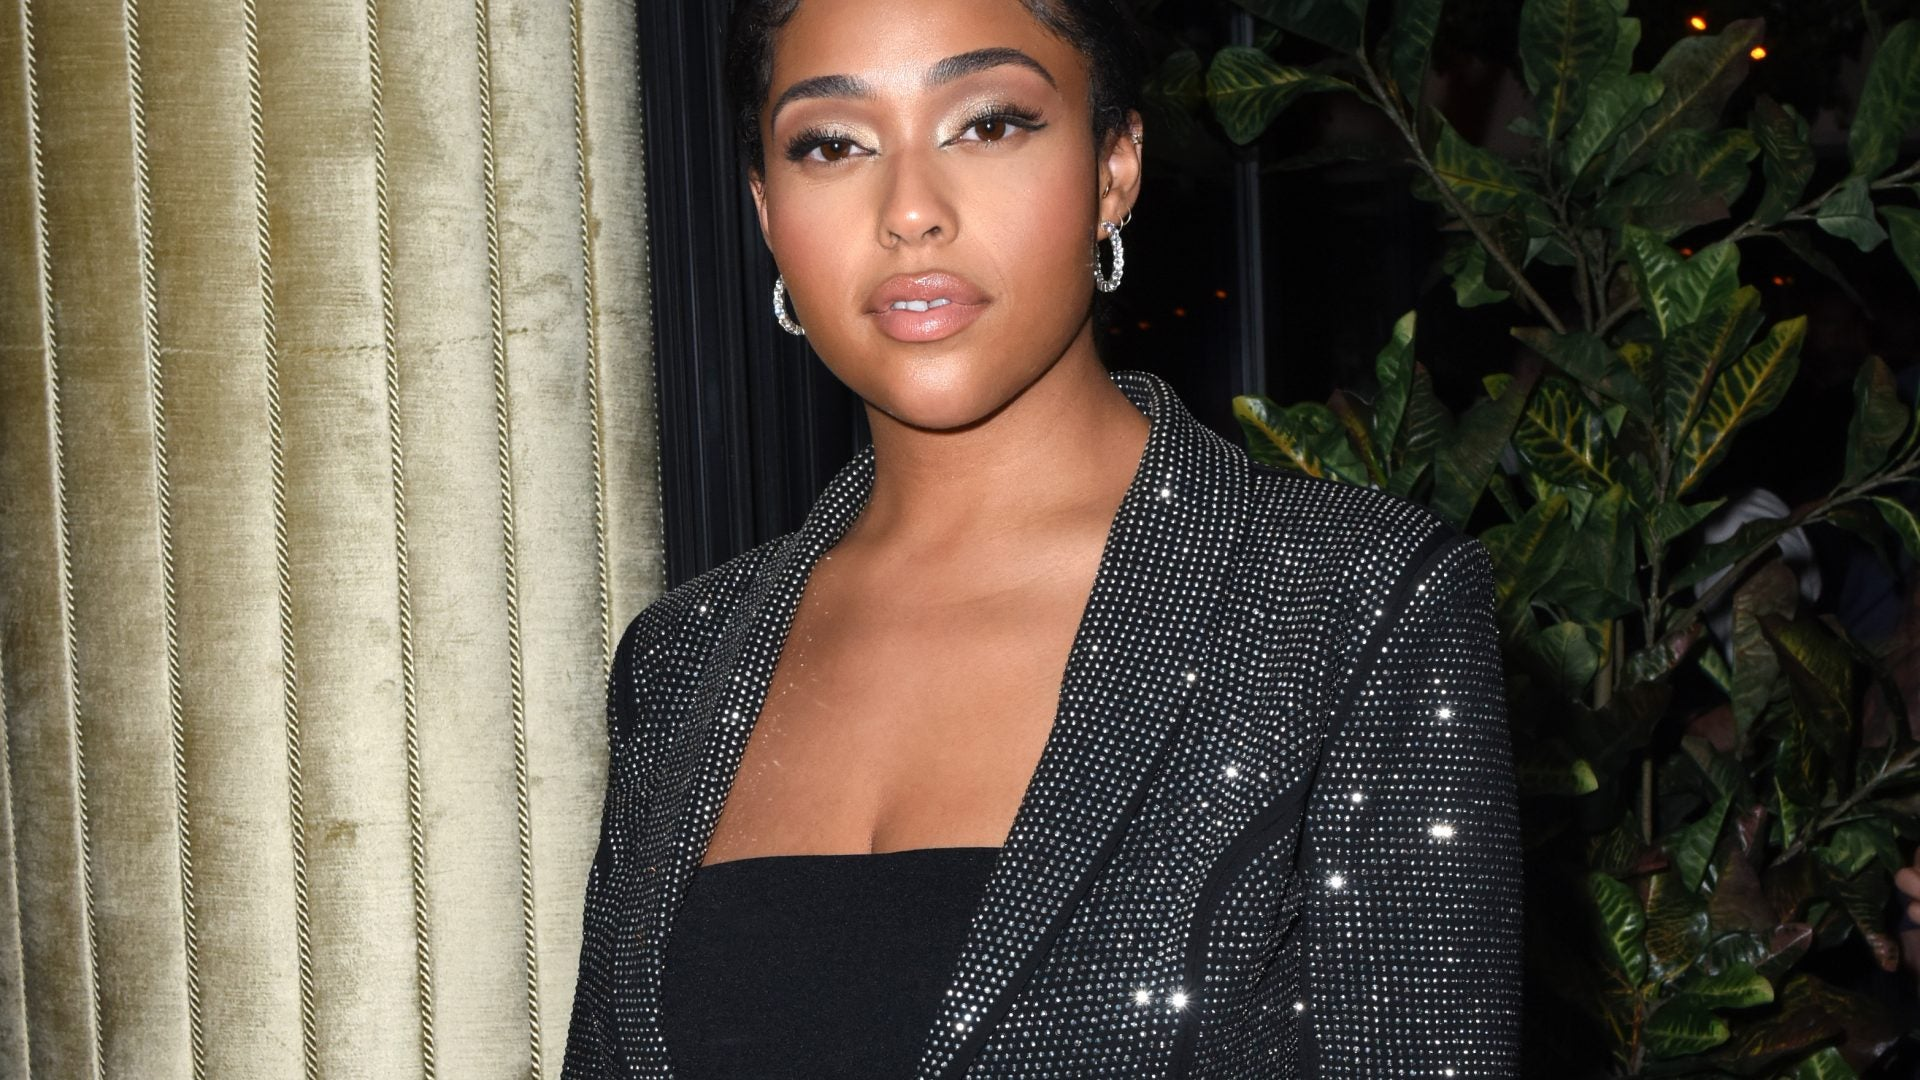 Jordyn Woods Clears The Air On 'Red Table Talk' Following Tristan Thompson Cheating Scandal